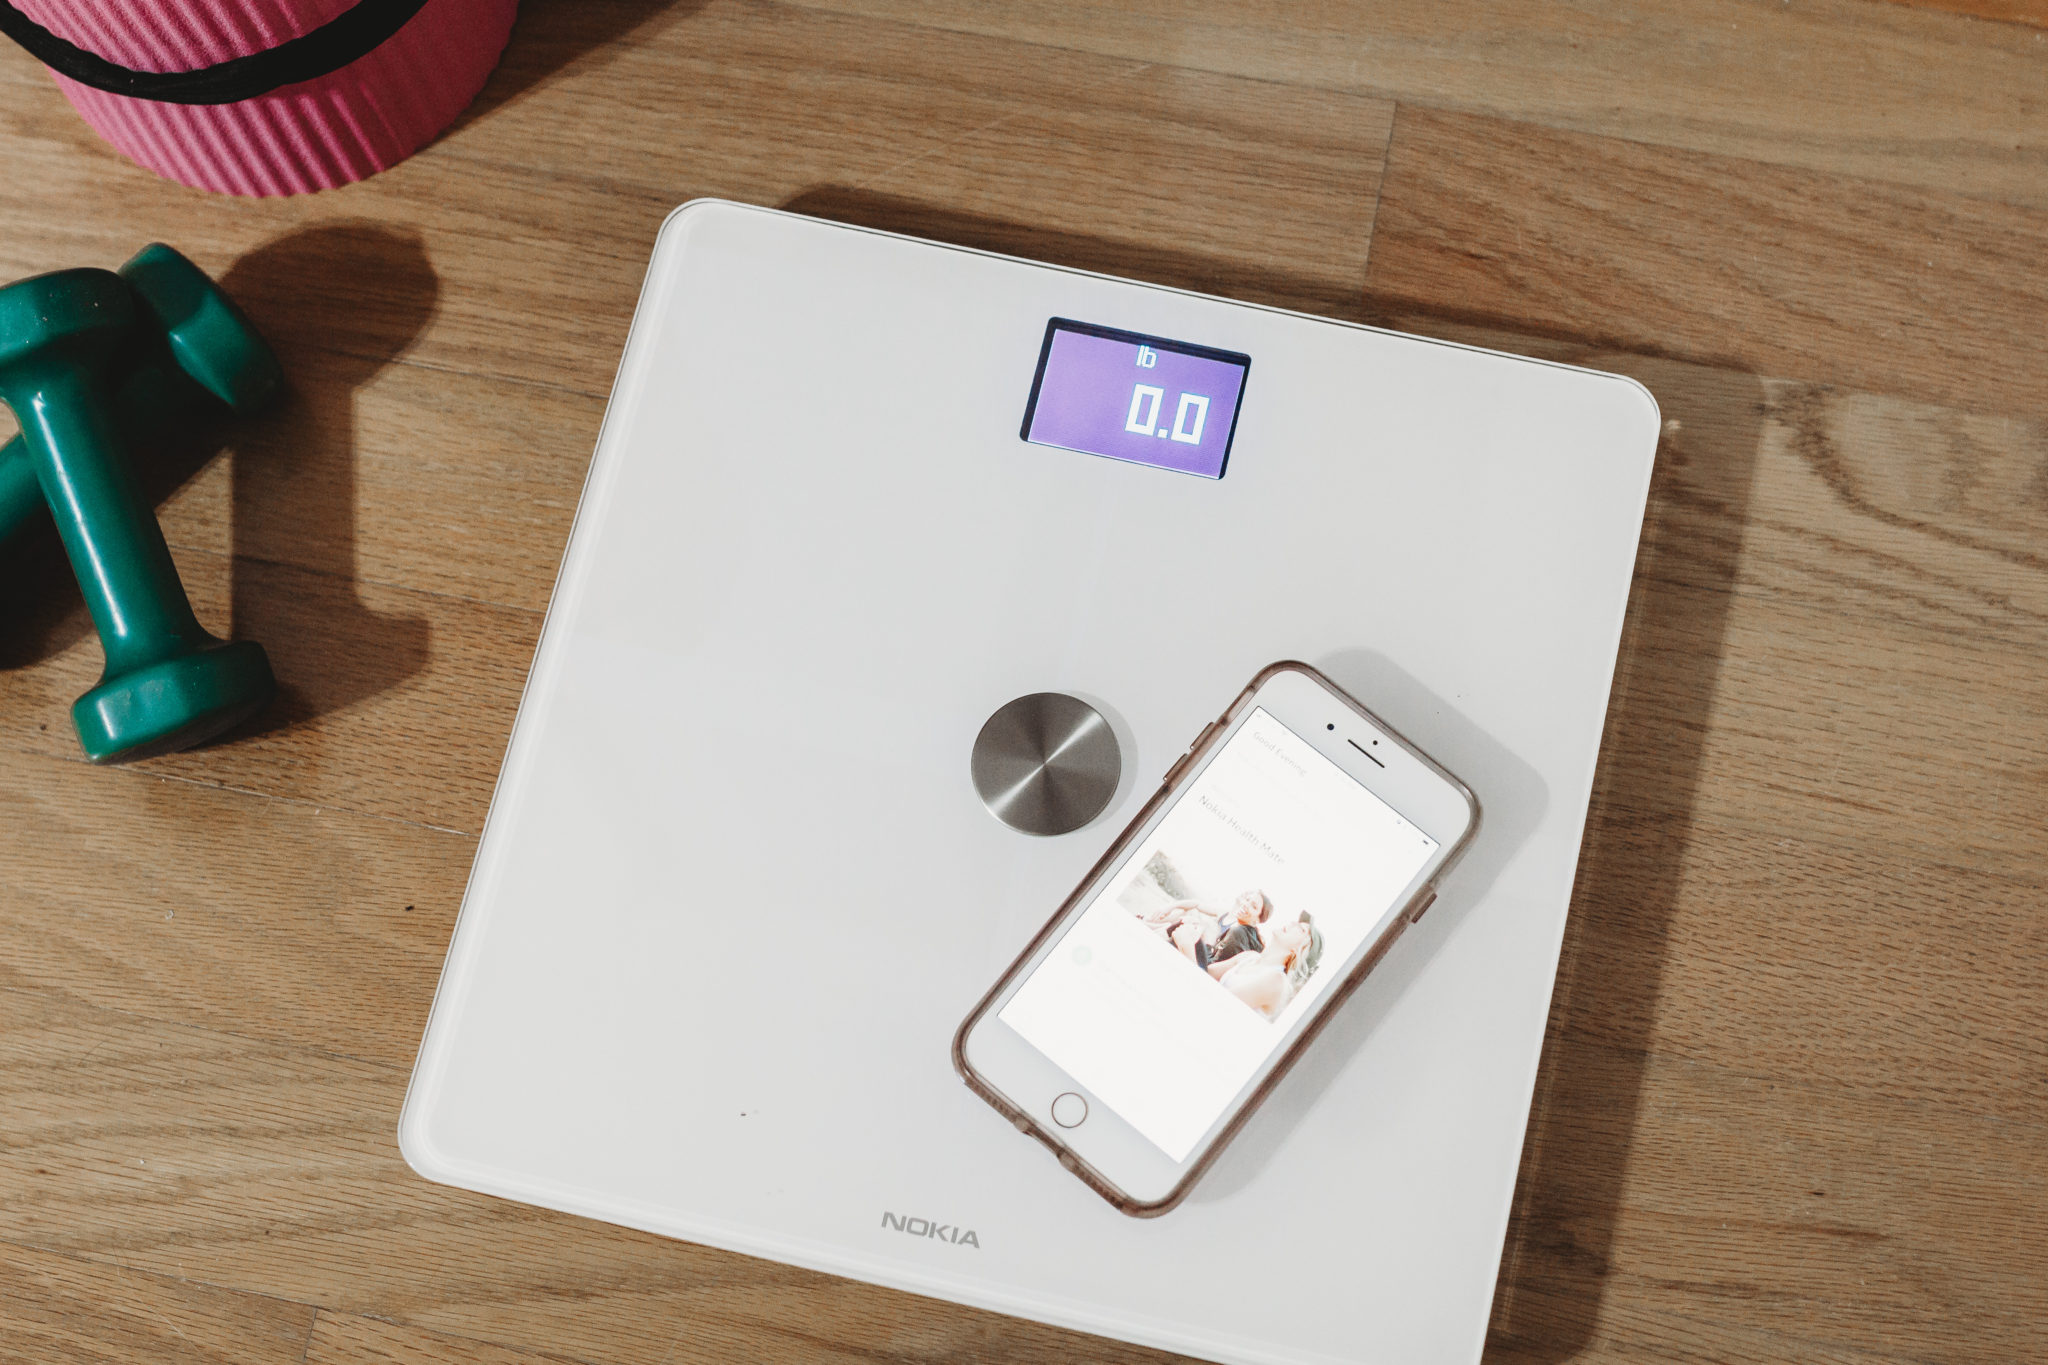 How to create better fitness goals and healthier choices with Nokia Body+ wifi scale #ad #NewYearNewYou #KnowYourself